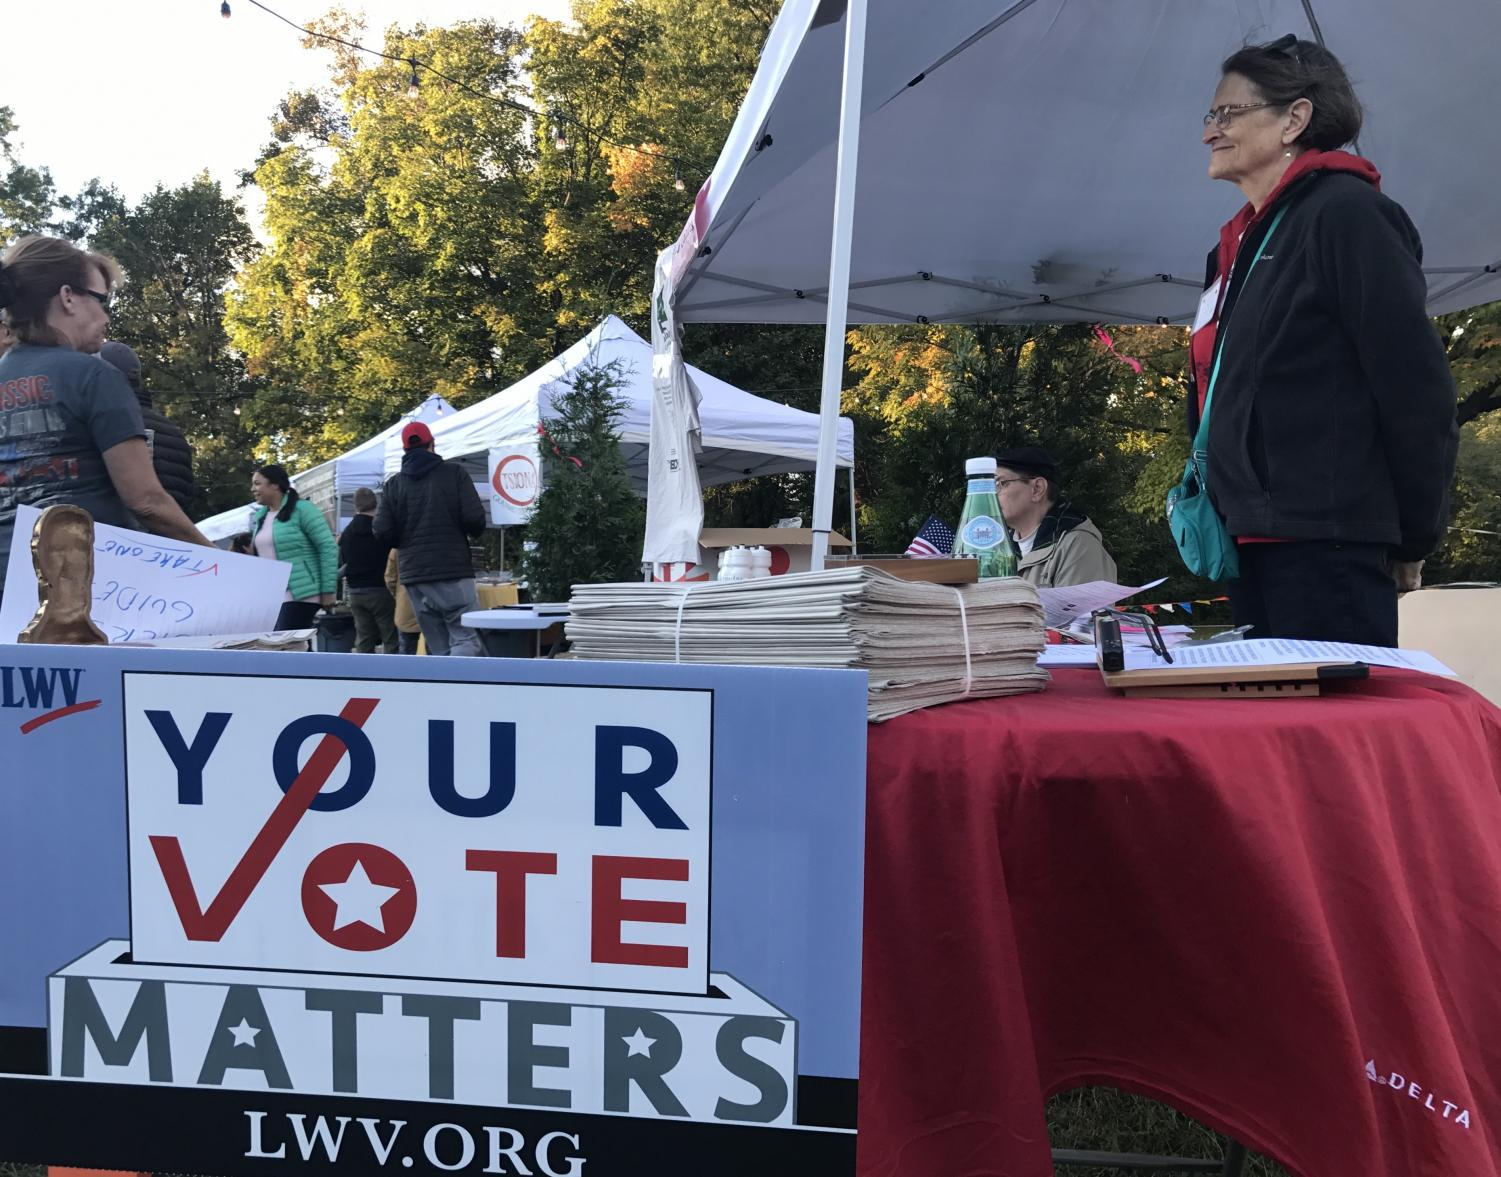 Volunteers set up a voter registration tent at a local festival. Political controversies have caused some formerly indifferent people, along with many newly 18 year old youths to sign up.